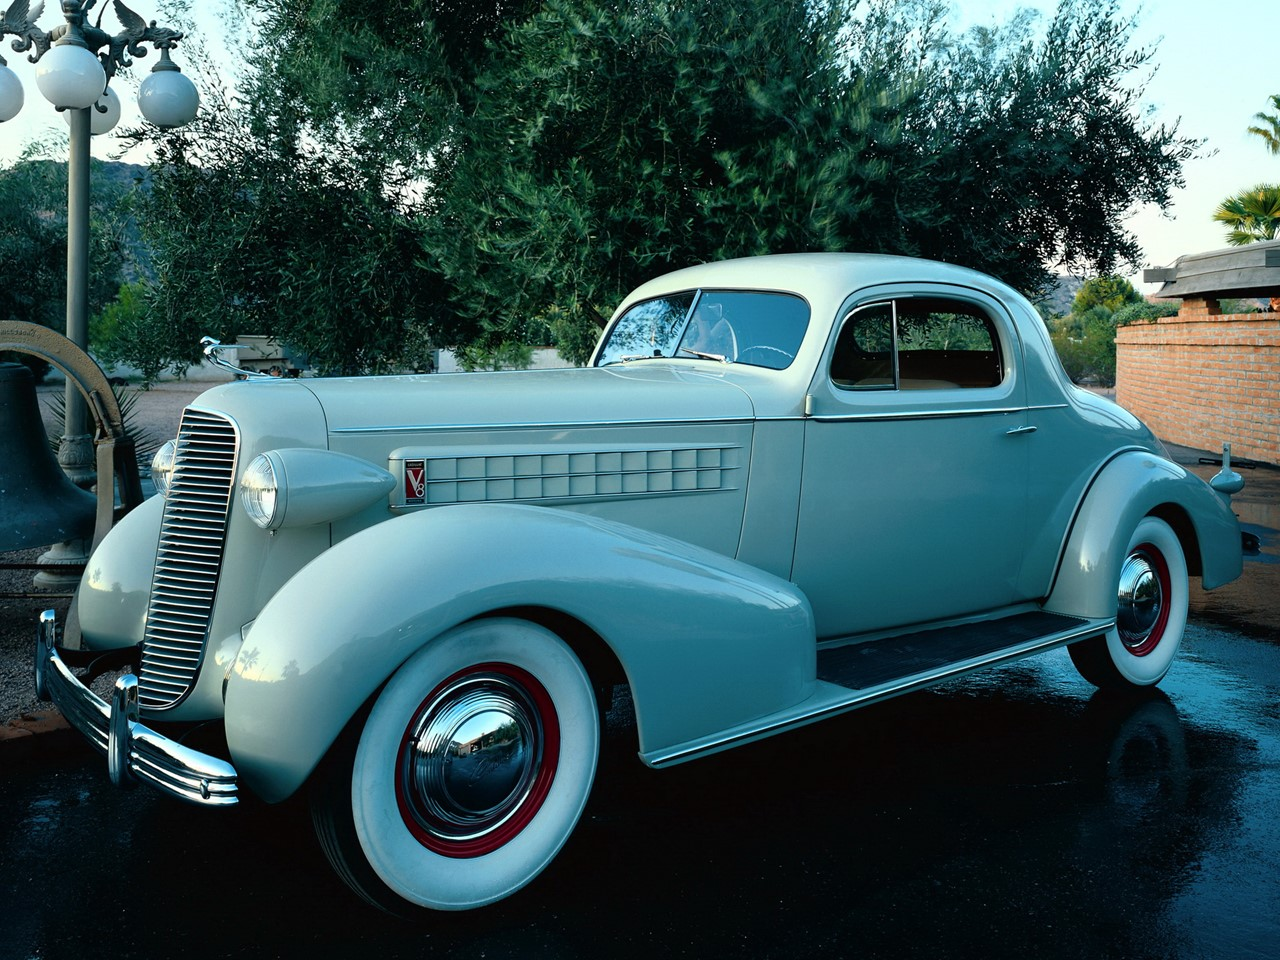 1936 Series 70 V8 coupe